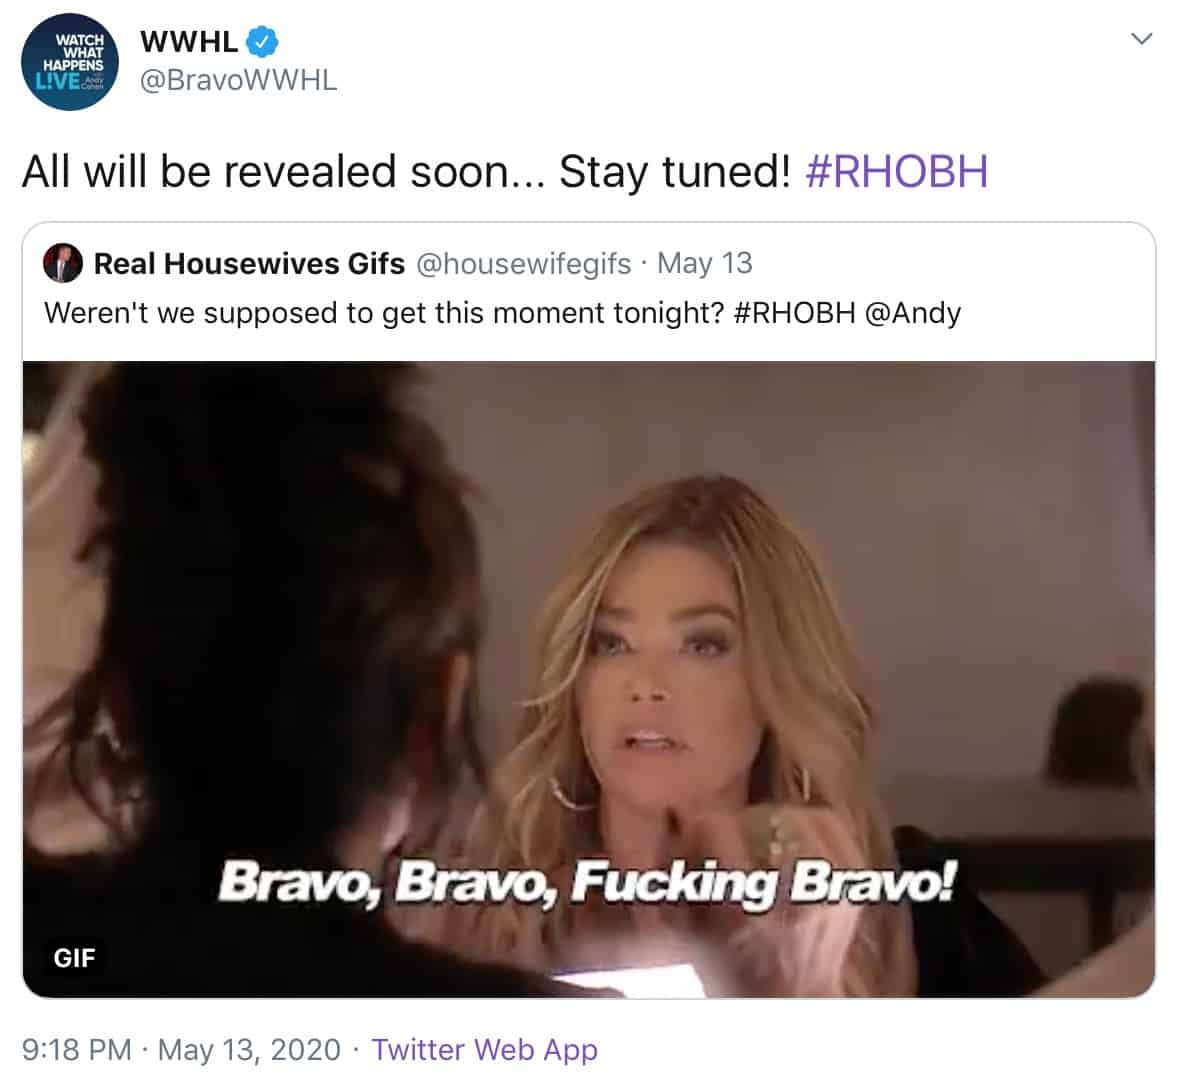 WWHL Teases Bravo Bravo Moment Coming Soon